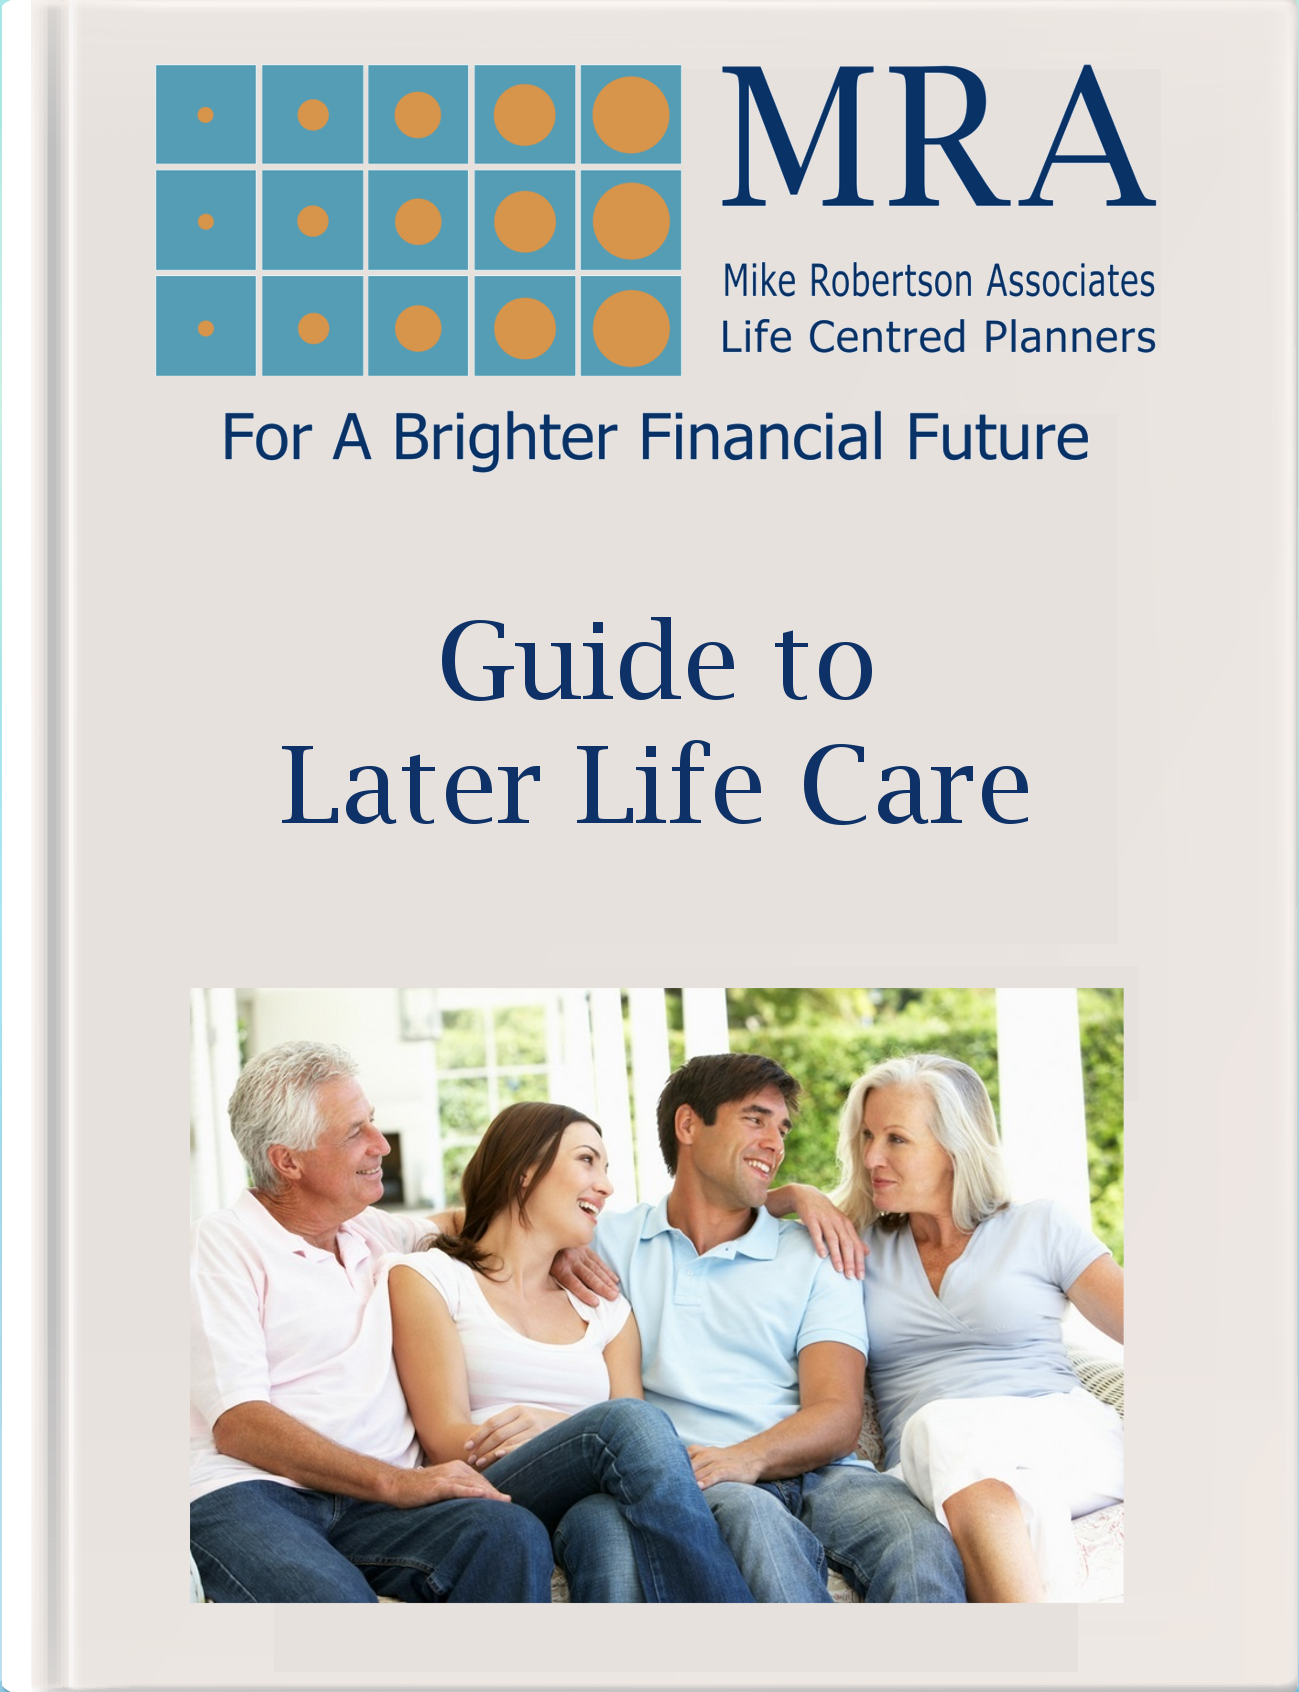 Download our Guide to Later Life Care